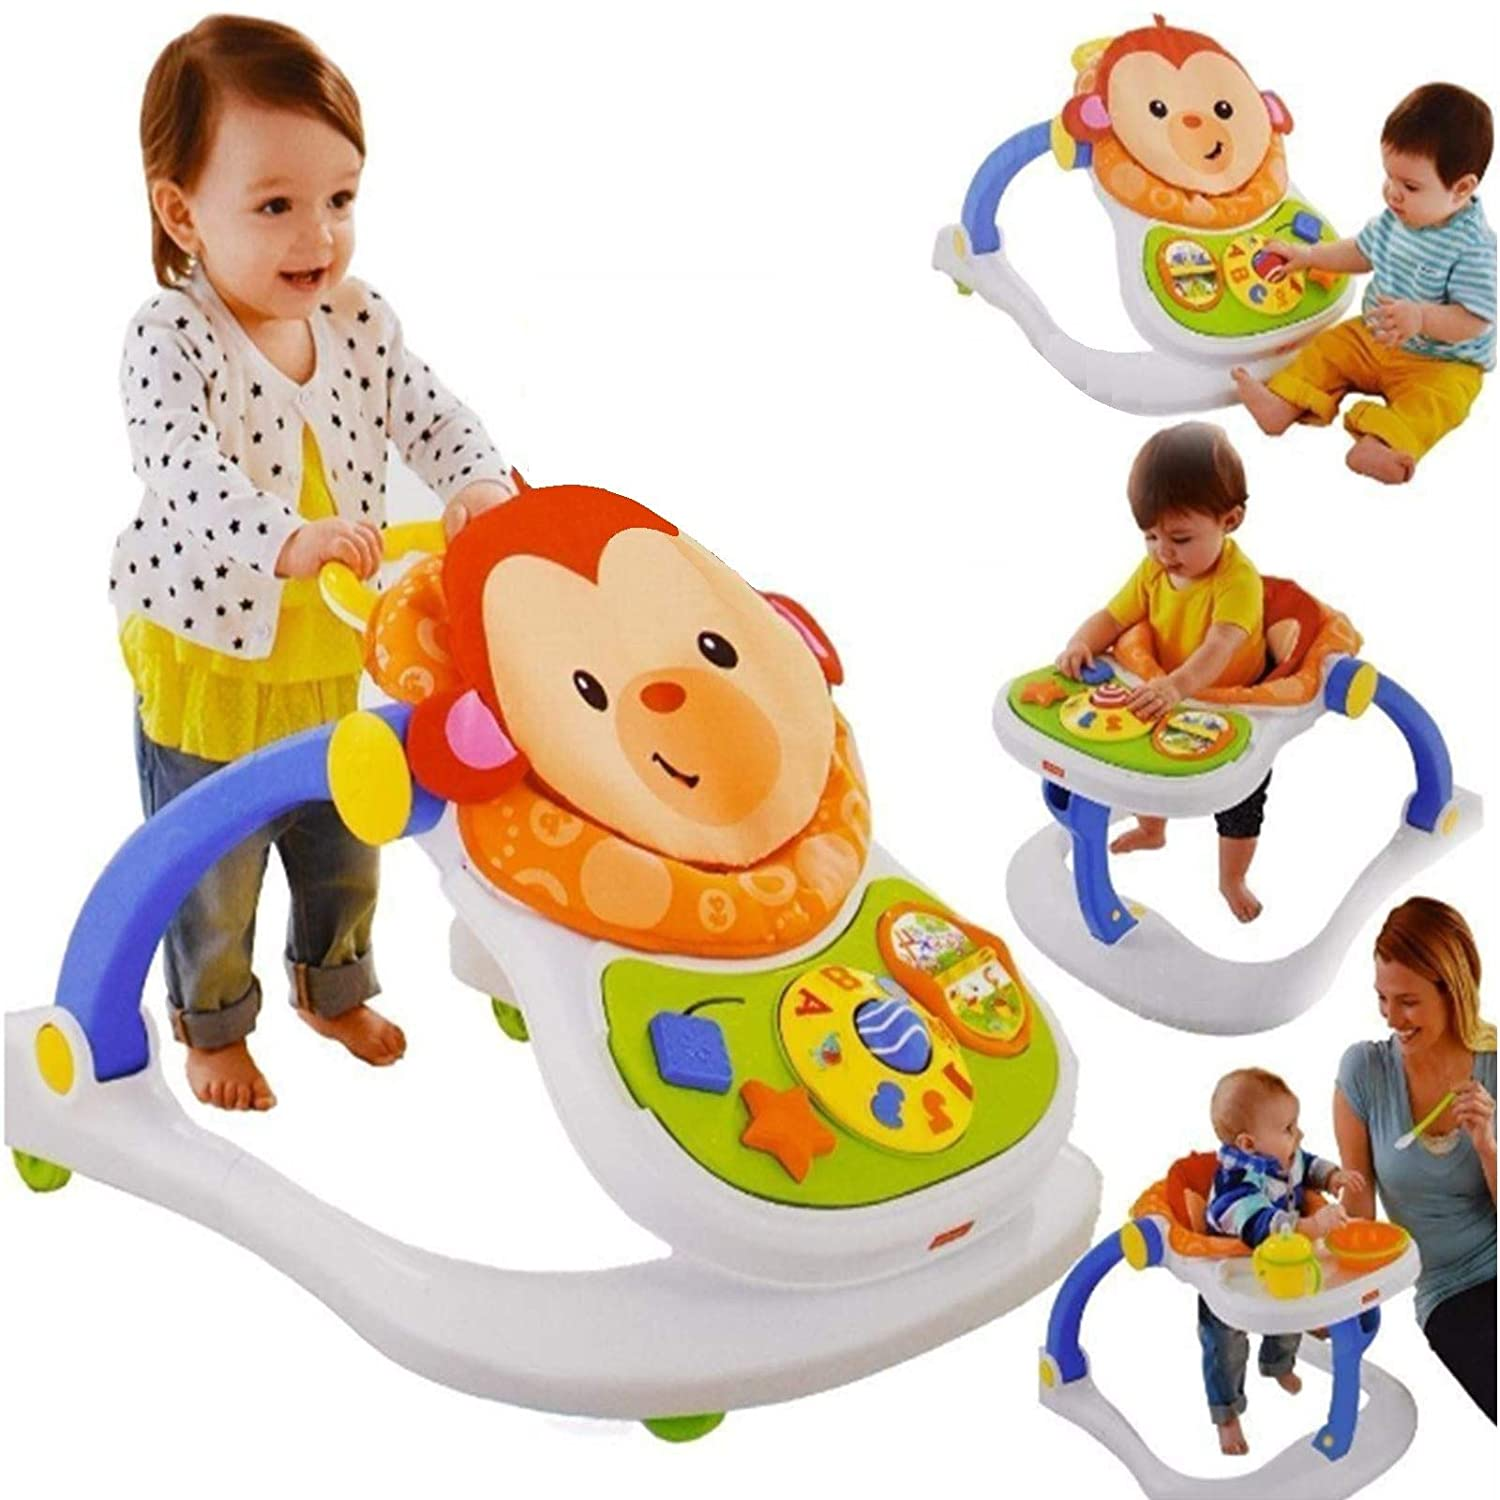 Fisher Price Monkey Entertainer - Silla de juguete para bebé ...